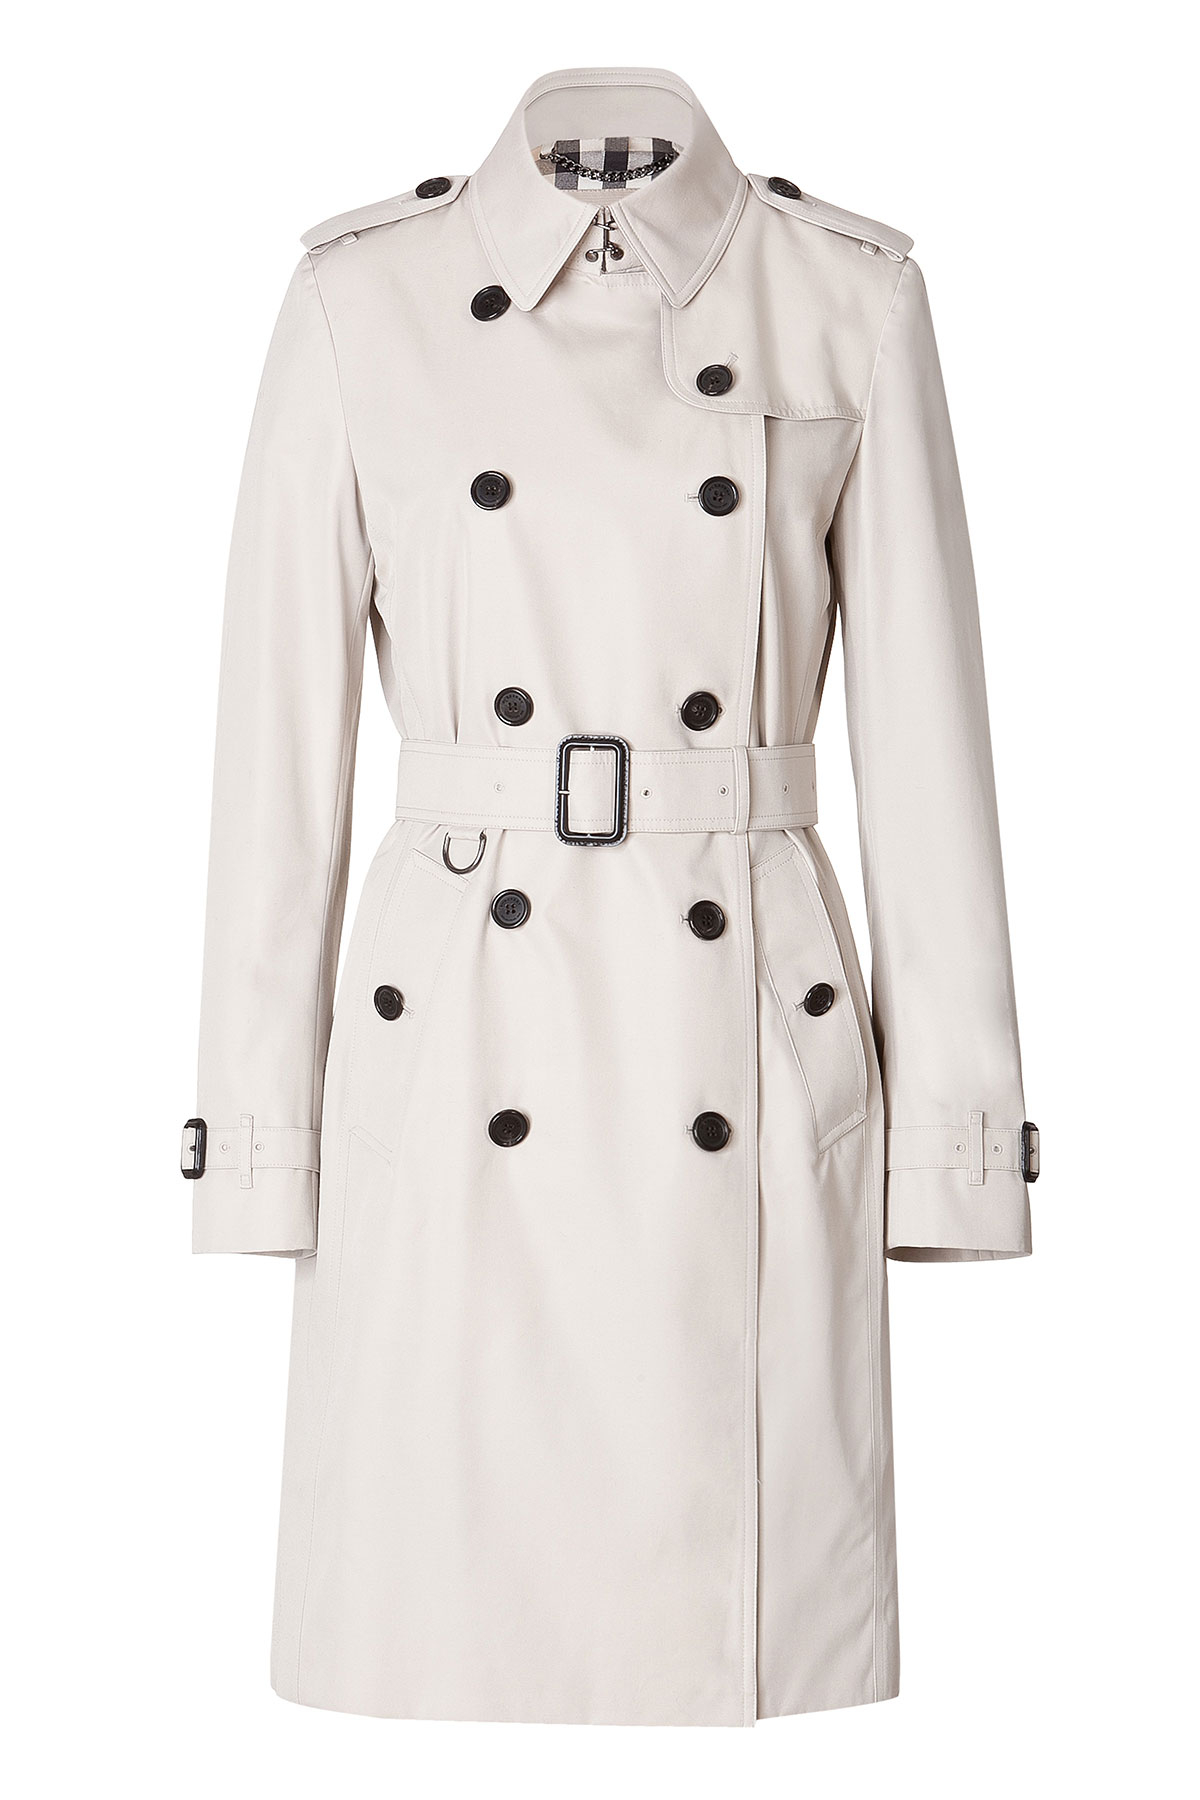 trench coat and burberry london burberry Shop burberry trench coat at bloomingdalescom free shipping and free returns for loyallists or any order over $150.